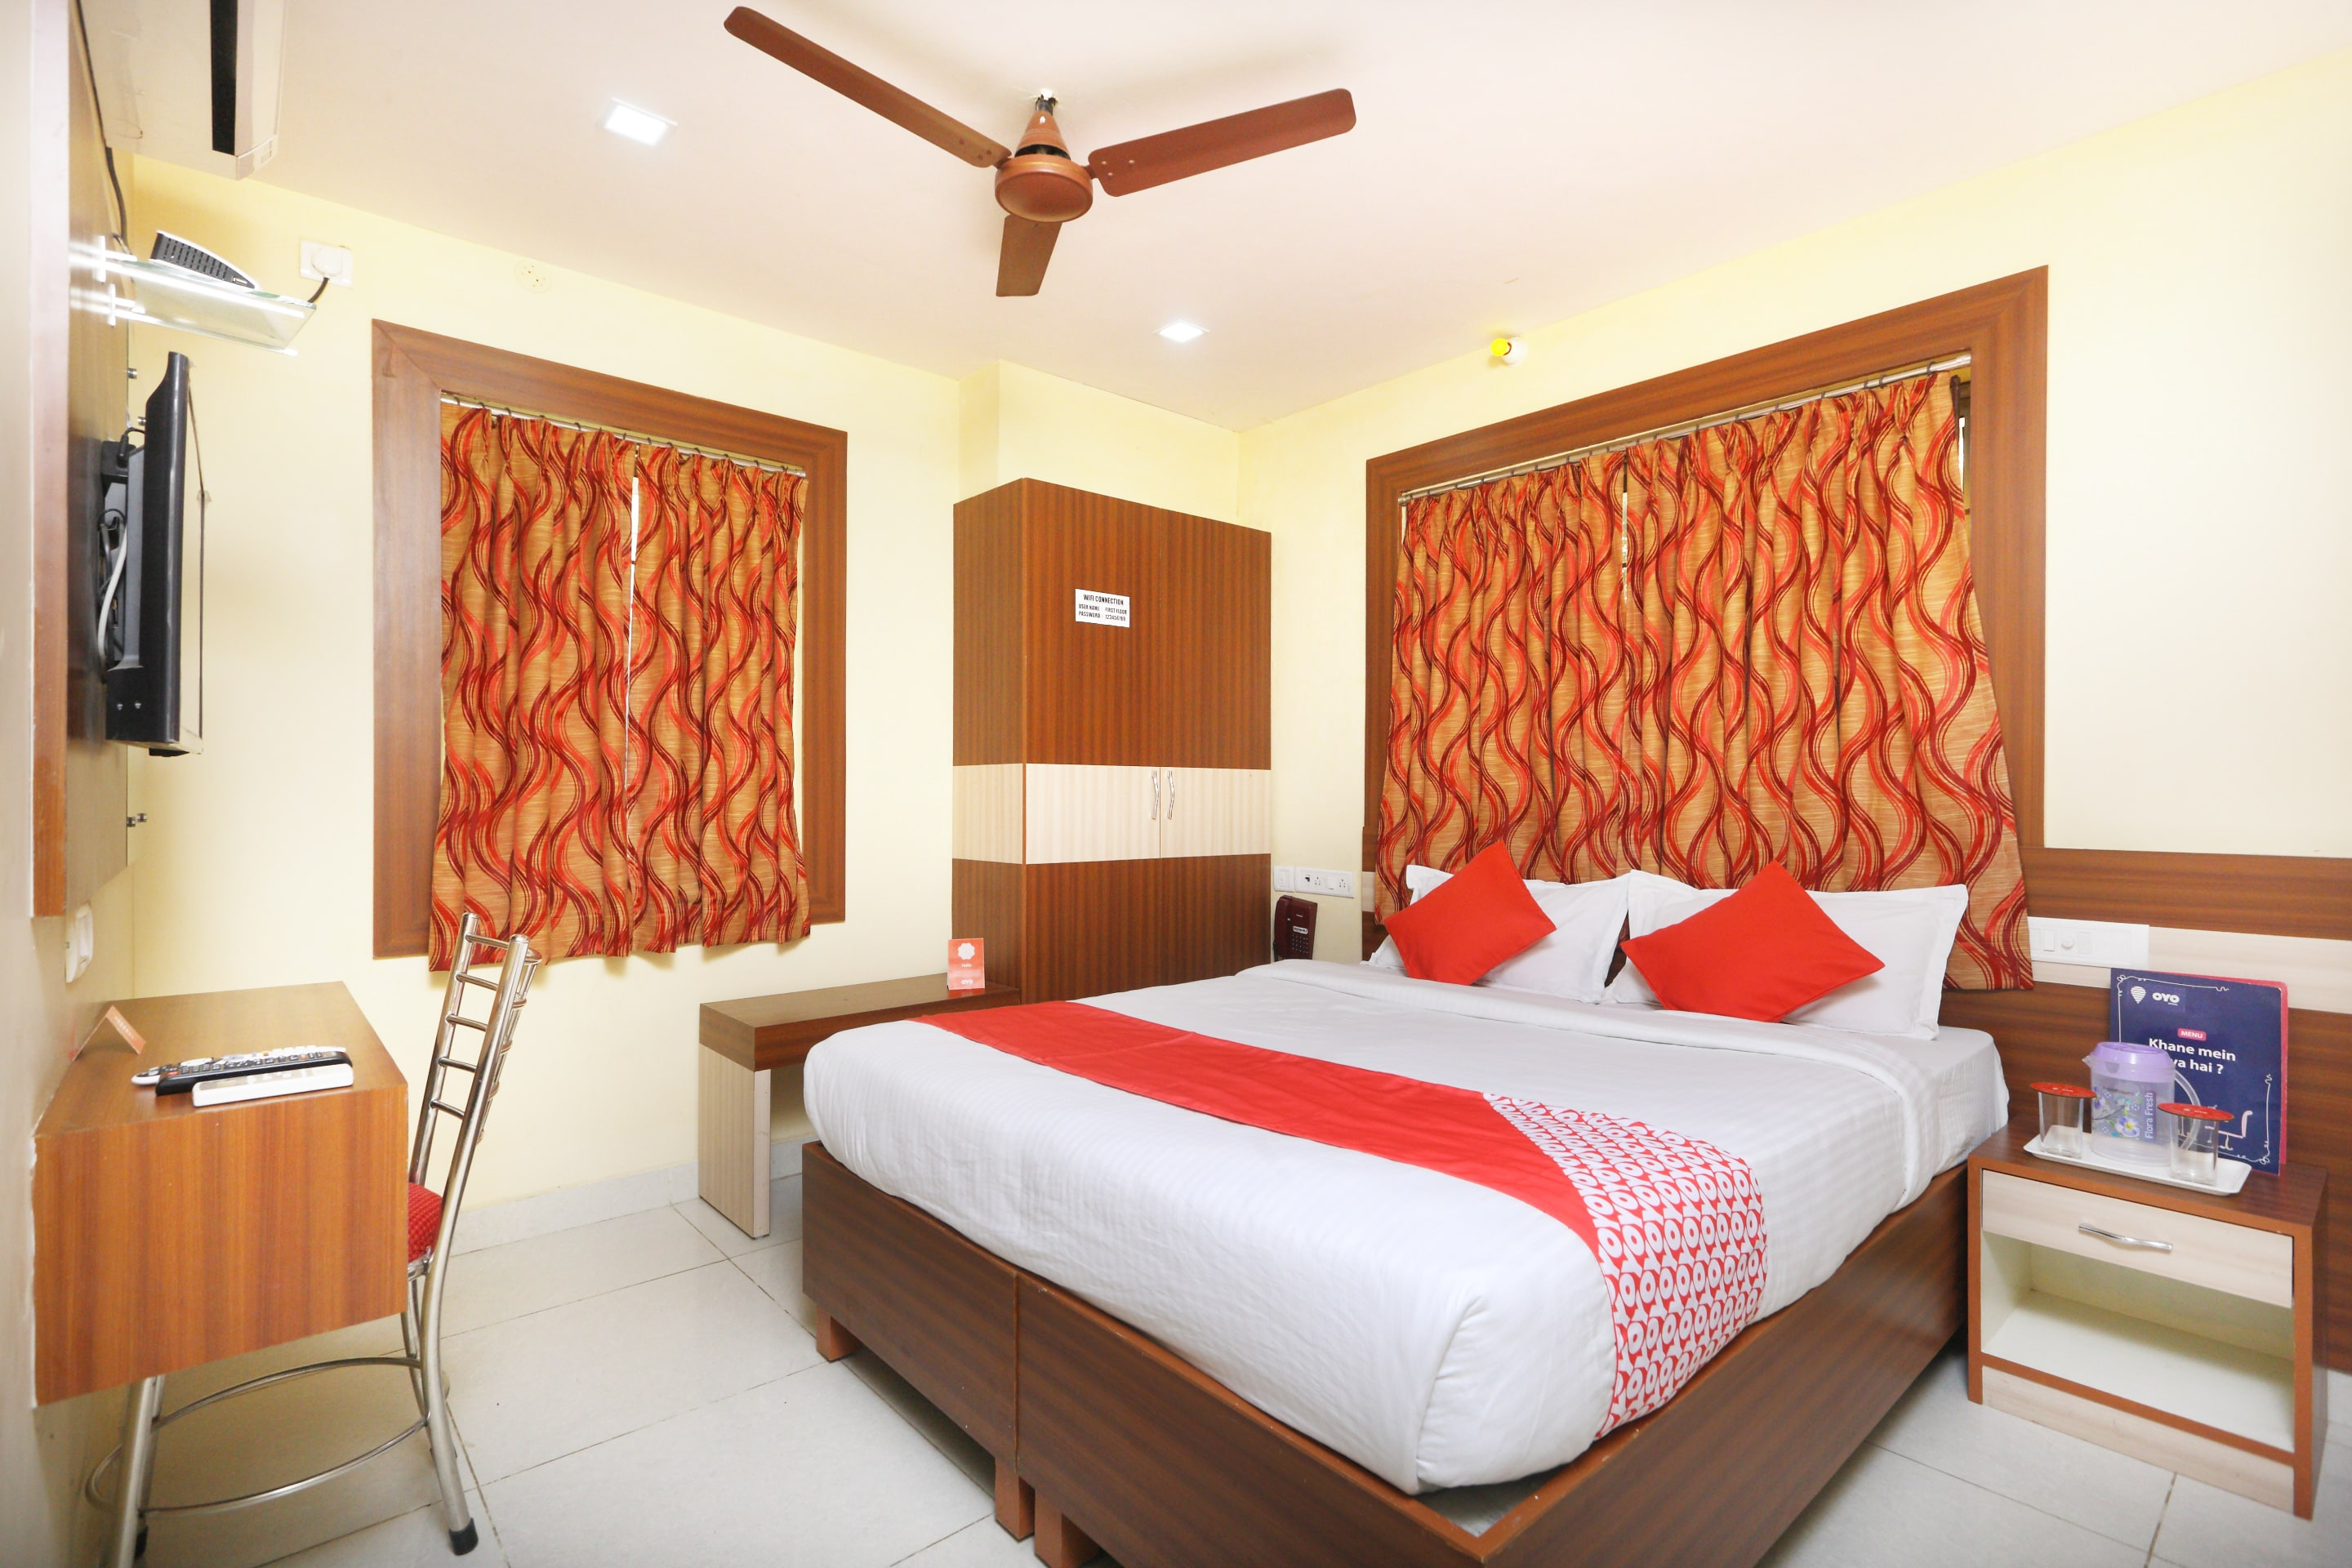 Chennai Hotels With Tv Price ₹429 Pay At Hotel Oyo